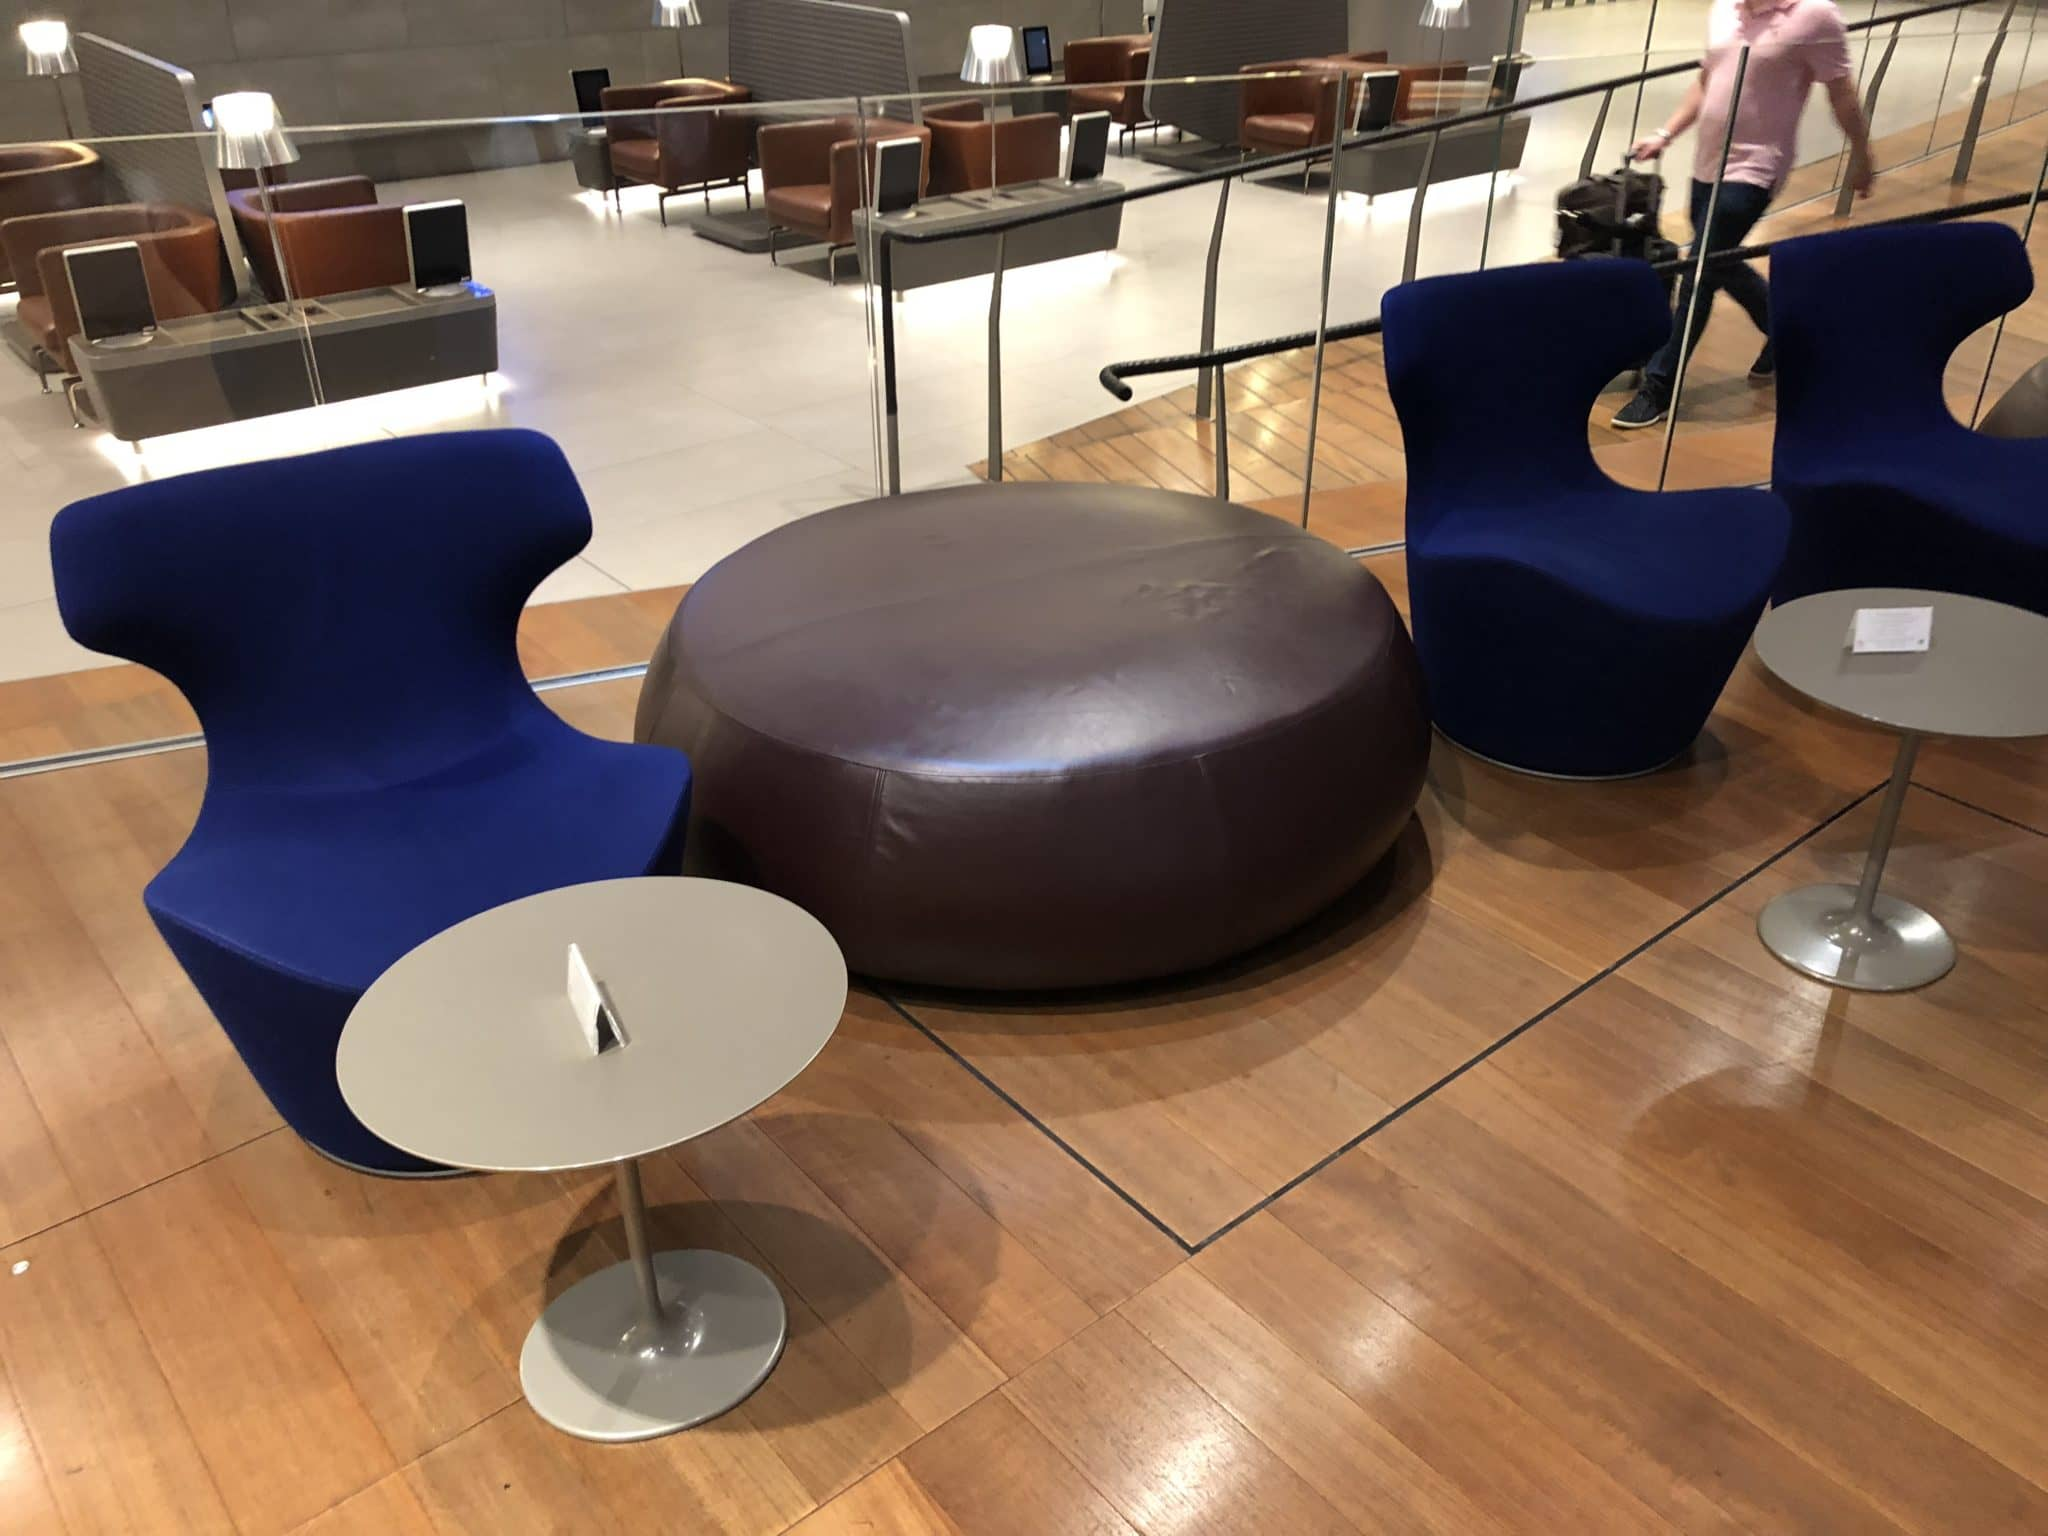 Qatar Airways Al Mourjan Business Class Lounge Sitzoptionen